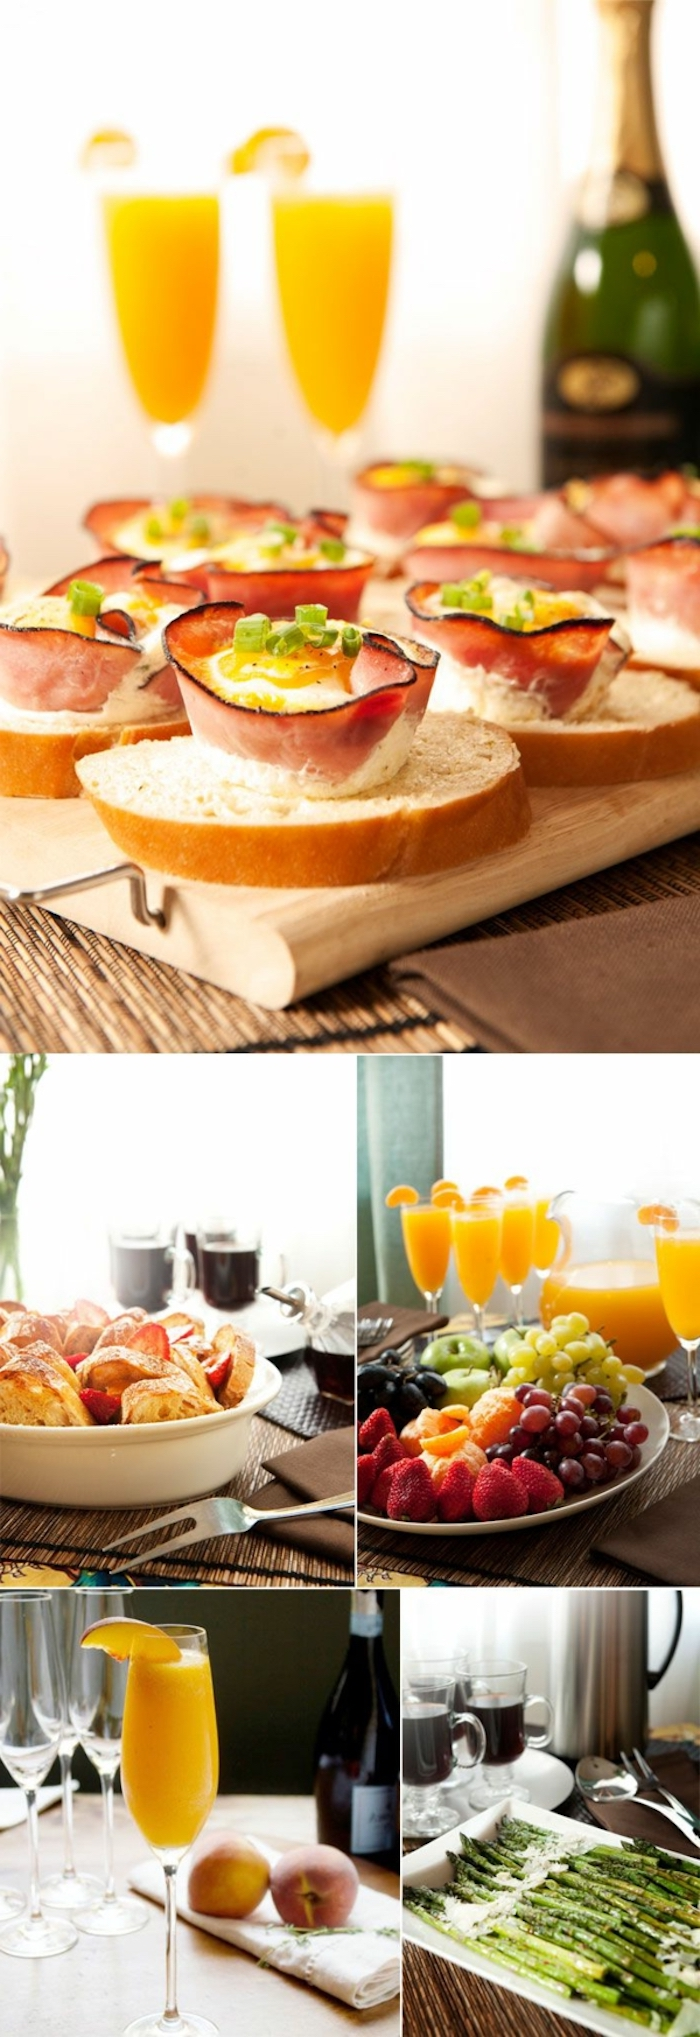 mimosas with orange slices, brunch table, brunch potluck ideas, bacon and eggs, fruit platter